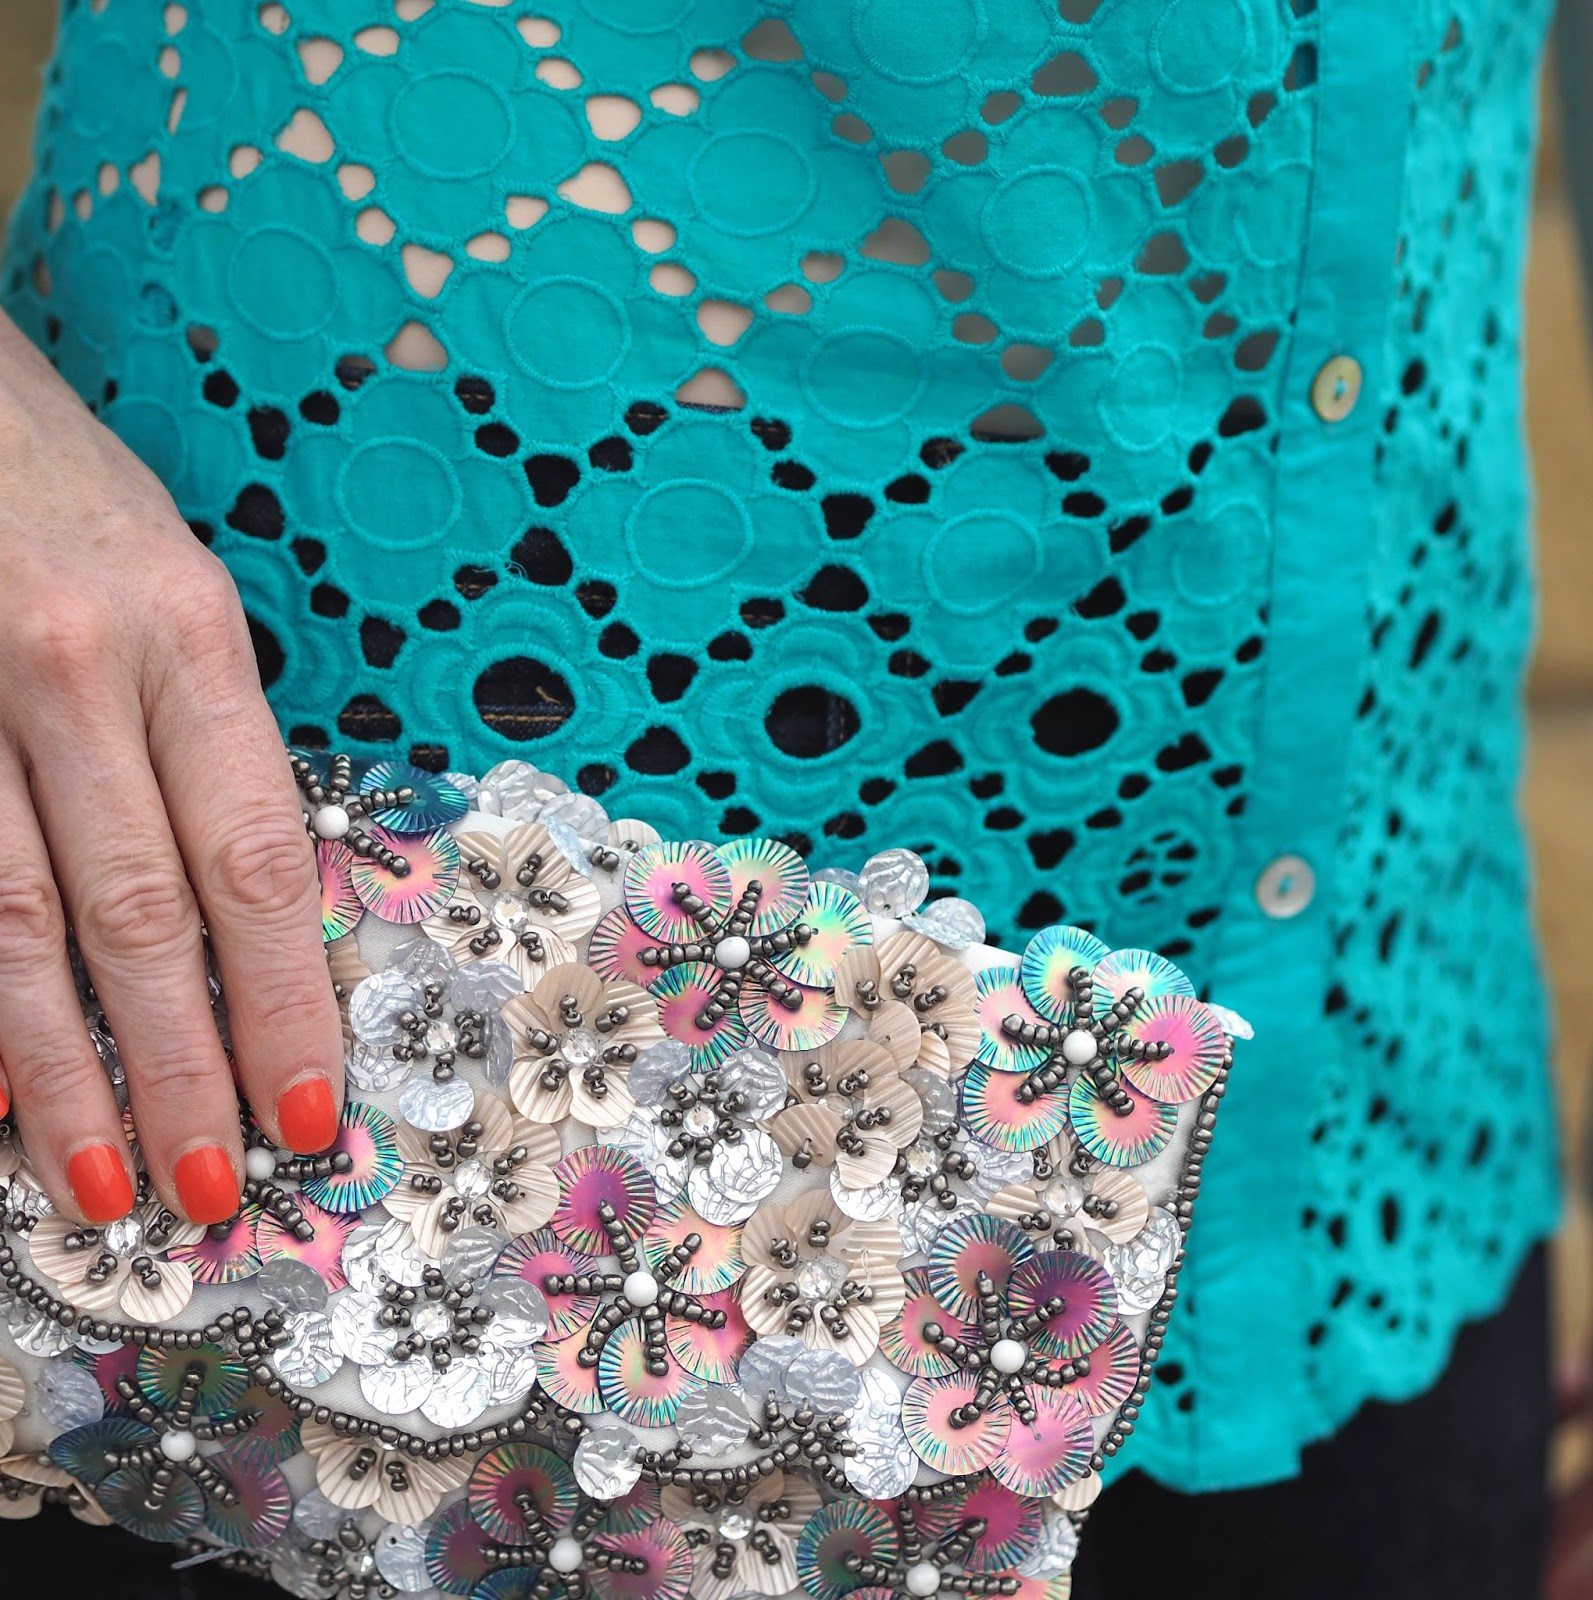 Turquoise broderie anglais top with skinny jeans and metallic floral embellished clutch bag